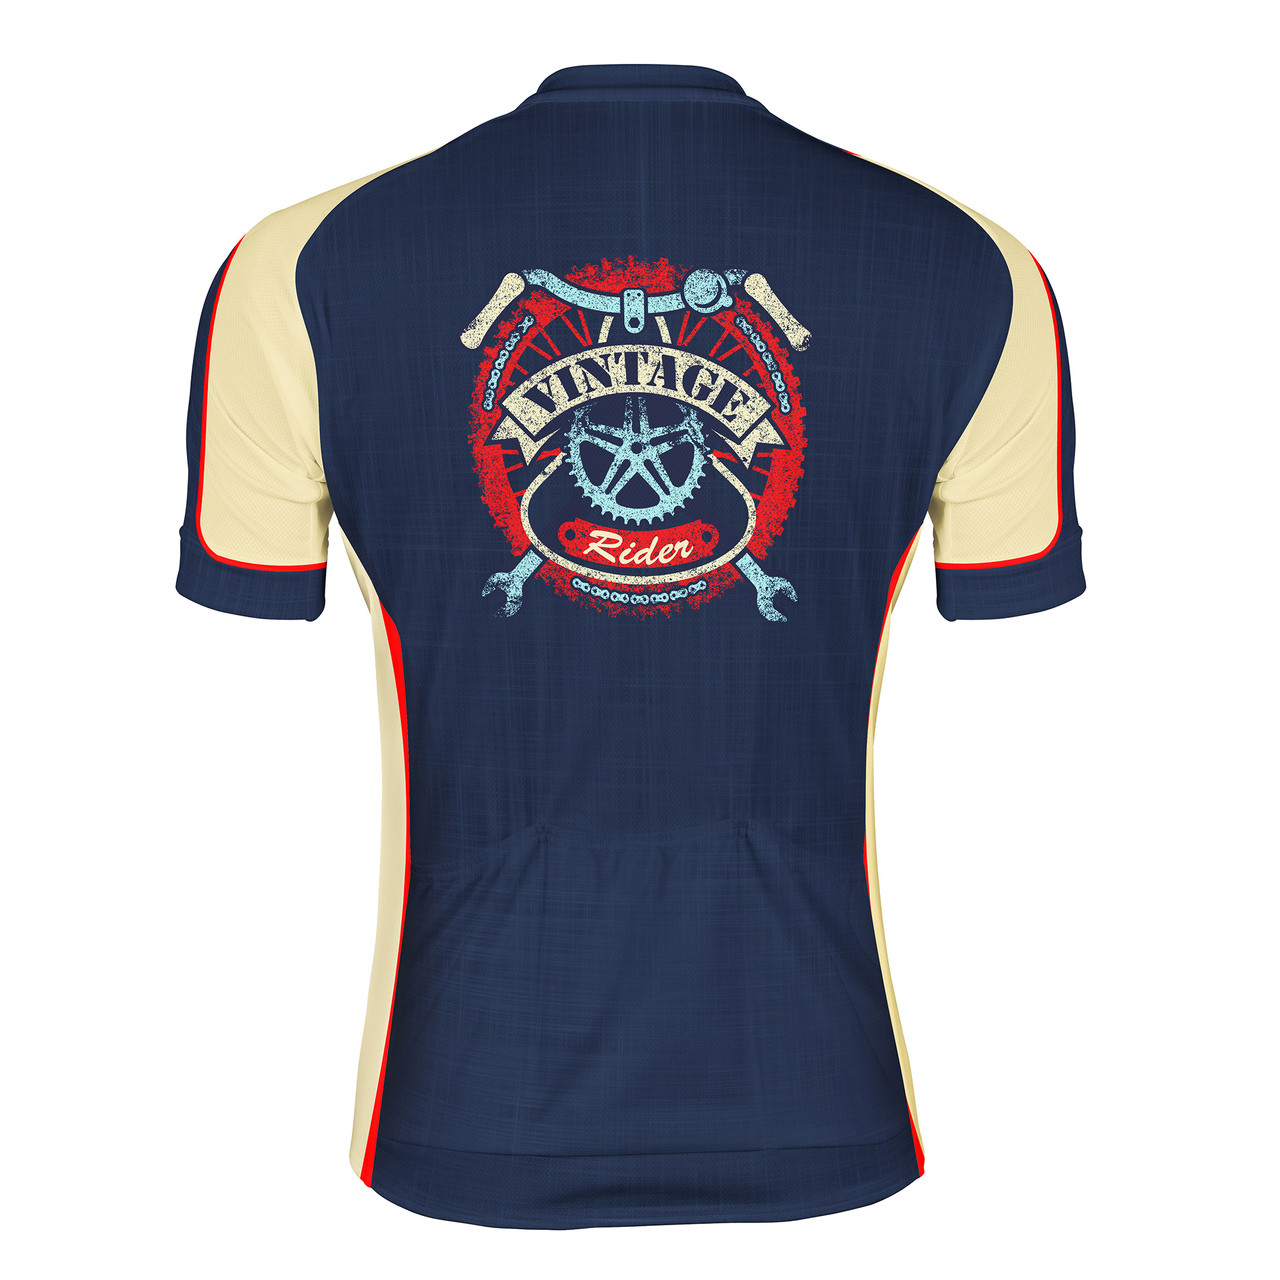 Men s Cycling Jersey Vintage Rider Peak 1 Sports 6cebb6768